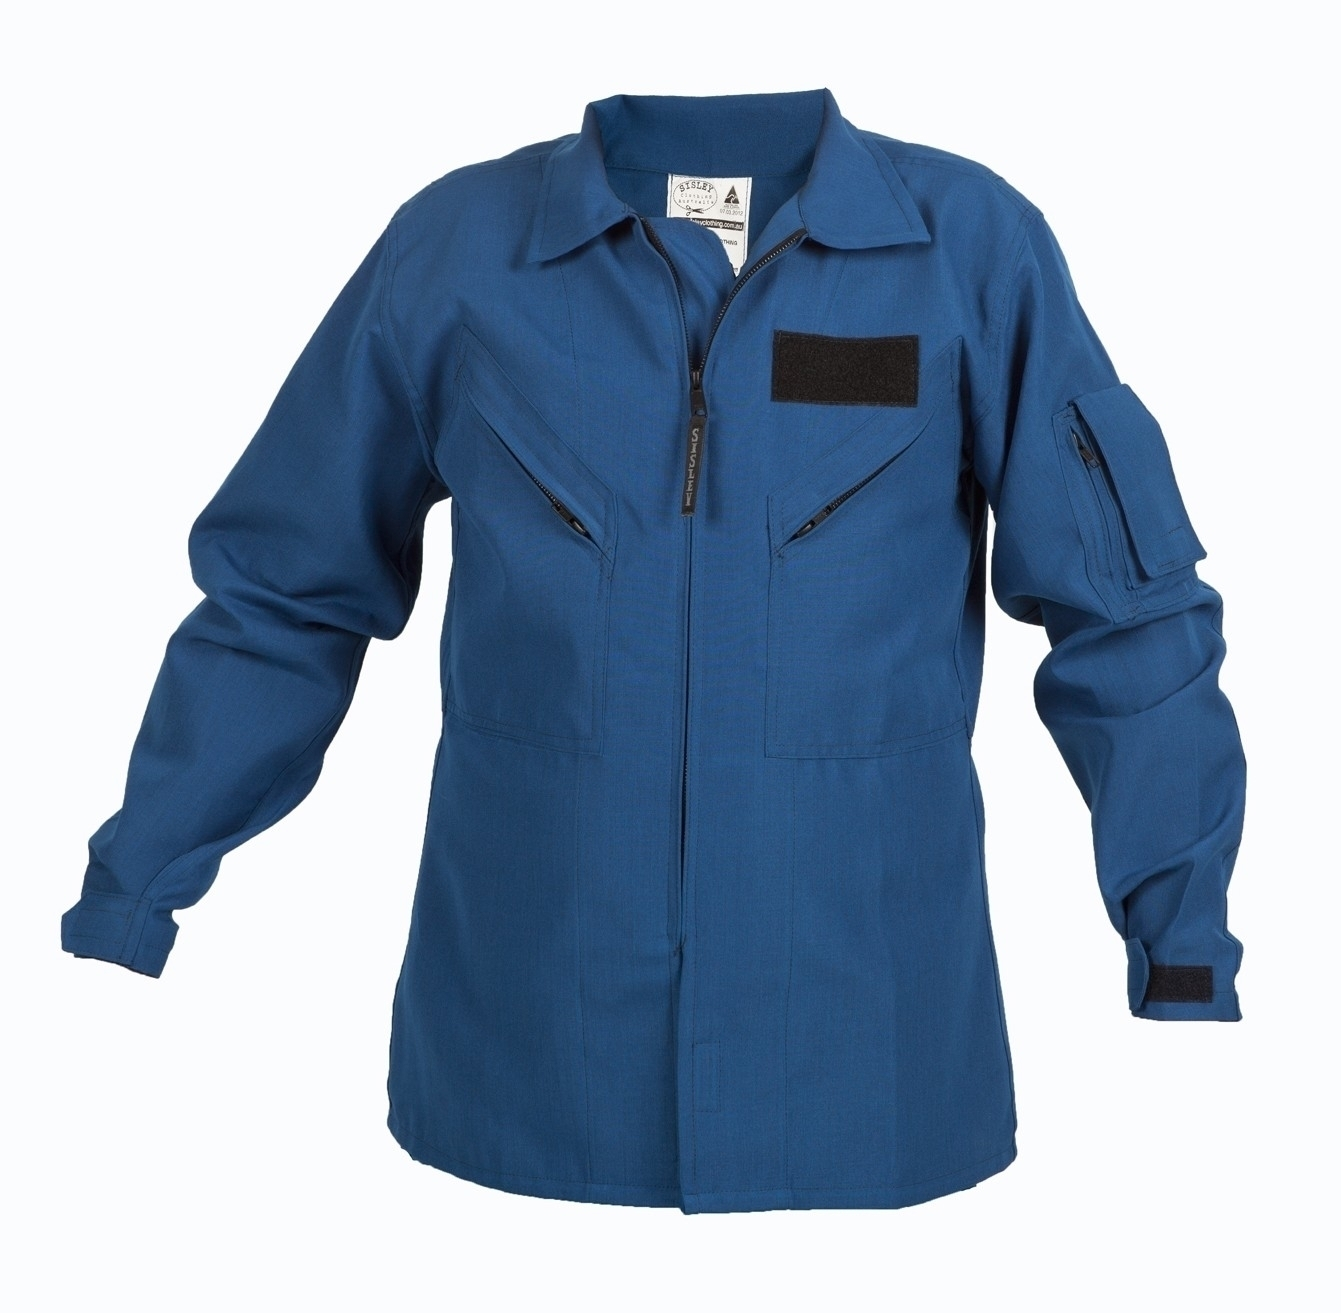 NOMEX JACKET ONLY 4.5 oz FLIGHT SUIT